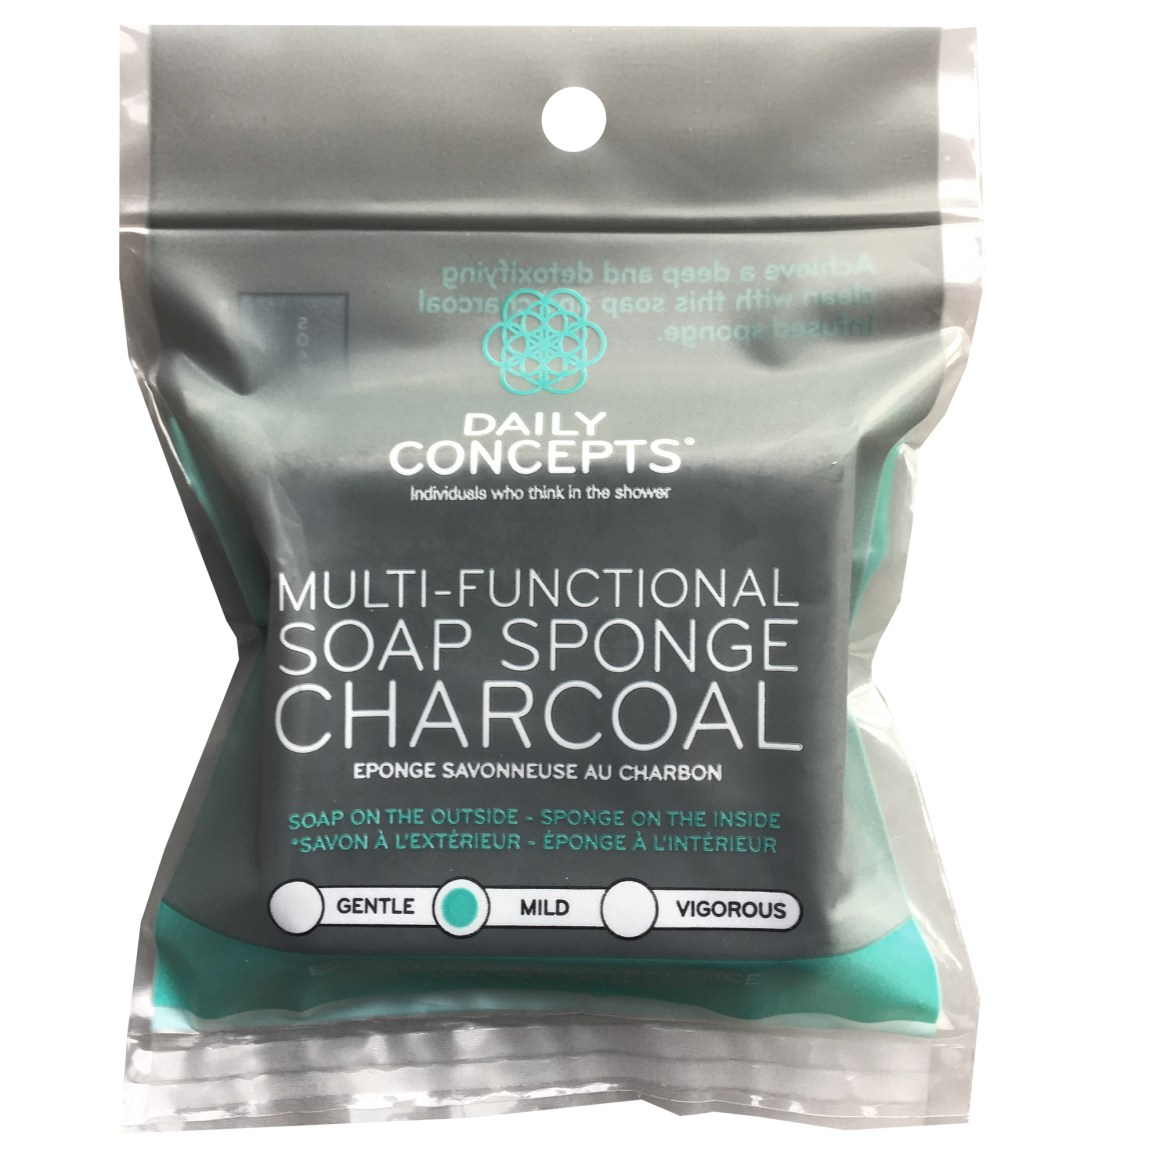 Daily Concepts – Multifunctional Charcoal Soap Sponge